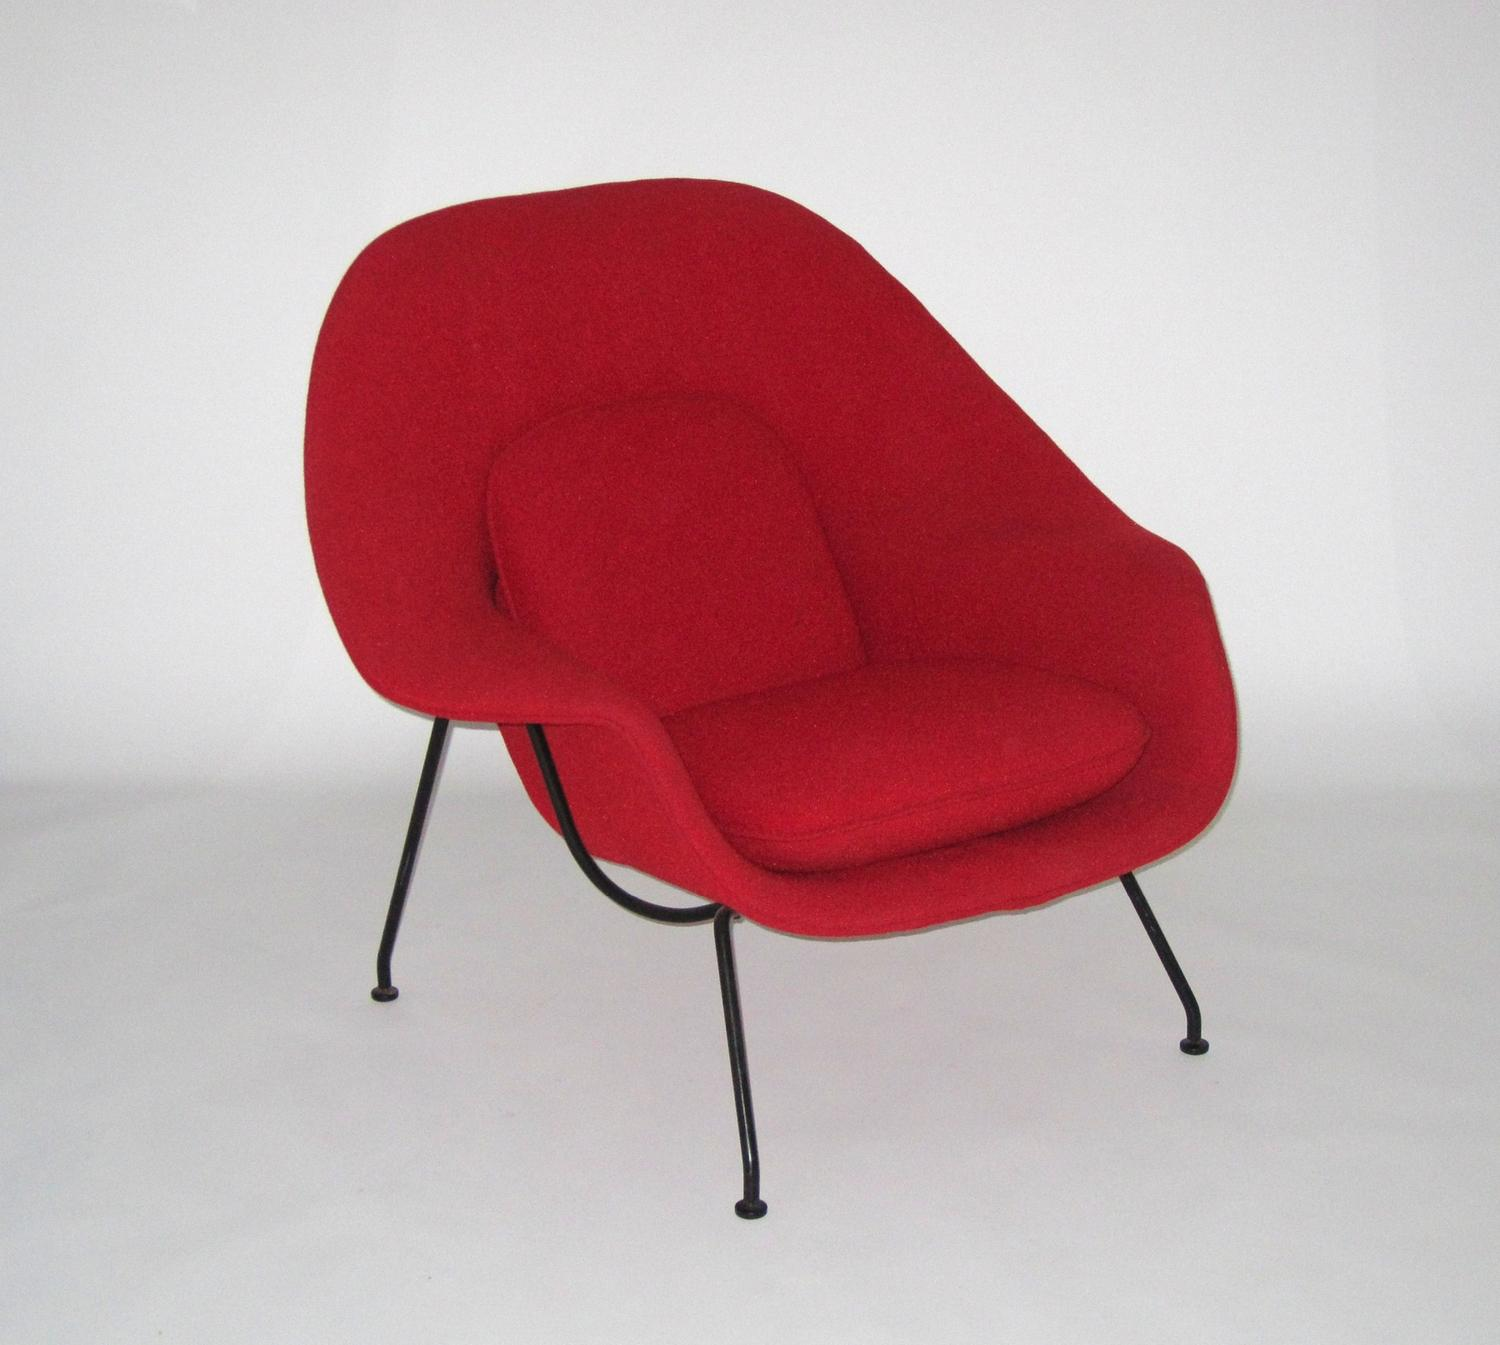 1950 · Image 2 : Eero Saarinen For Knoll Womb Chair C.